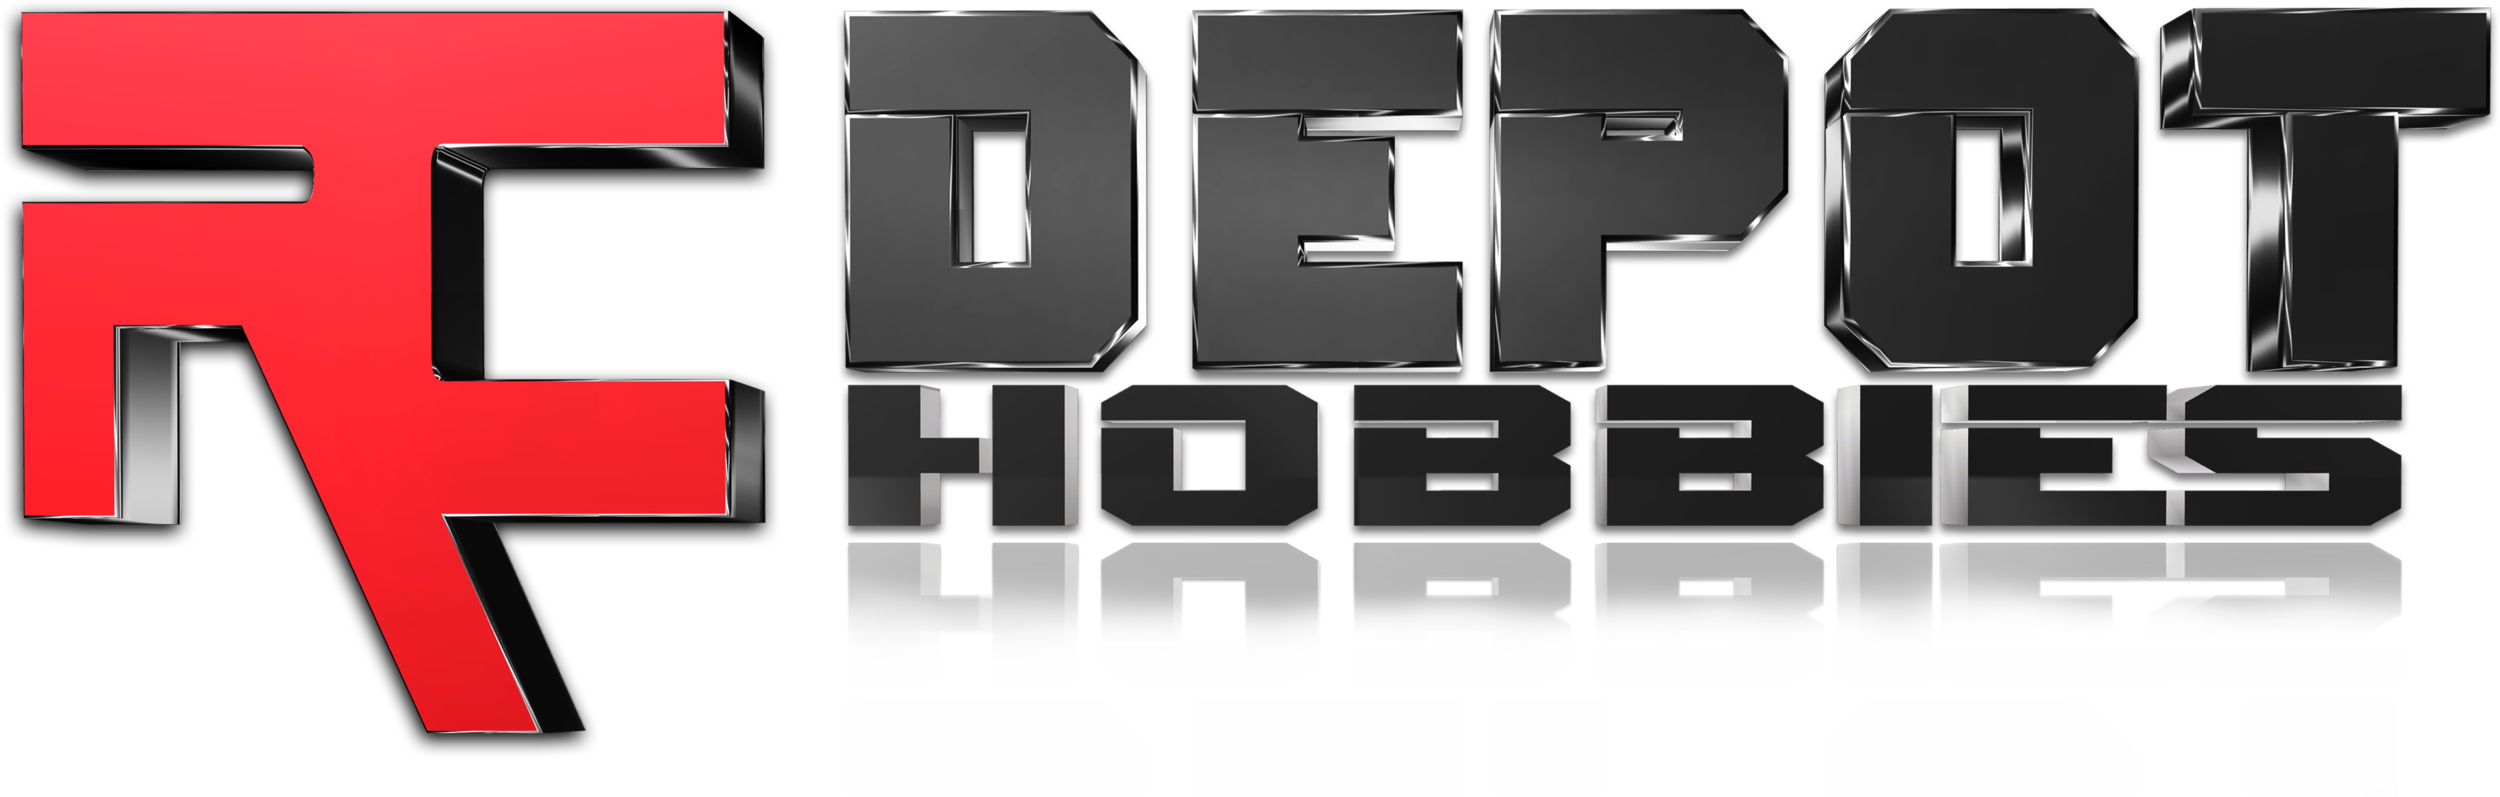 TV_RCDEPOTHOBBIES_LOGO_vfinal.png